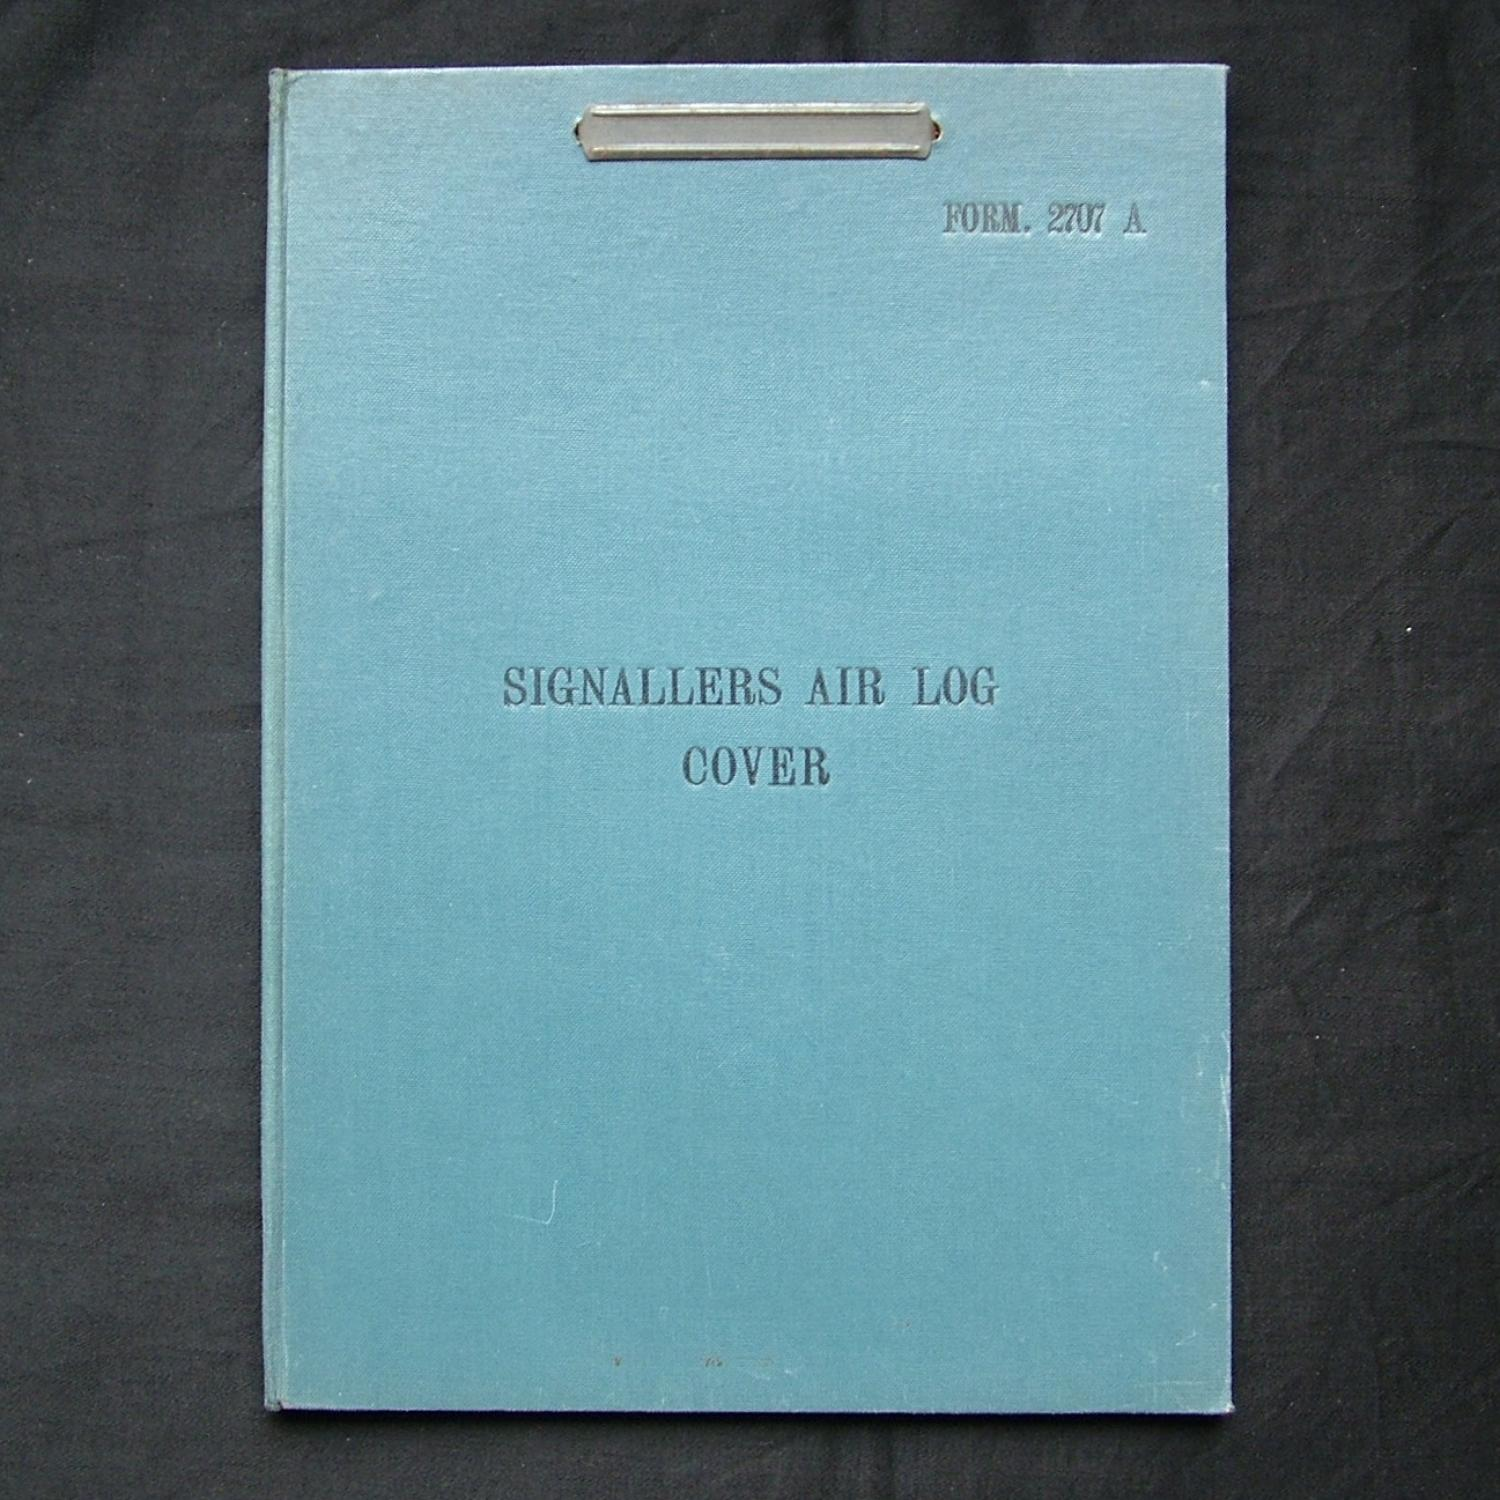 RAF Signallers air log cover